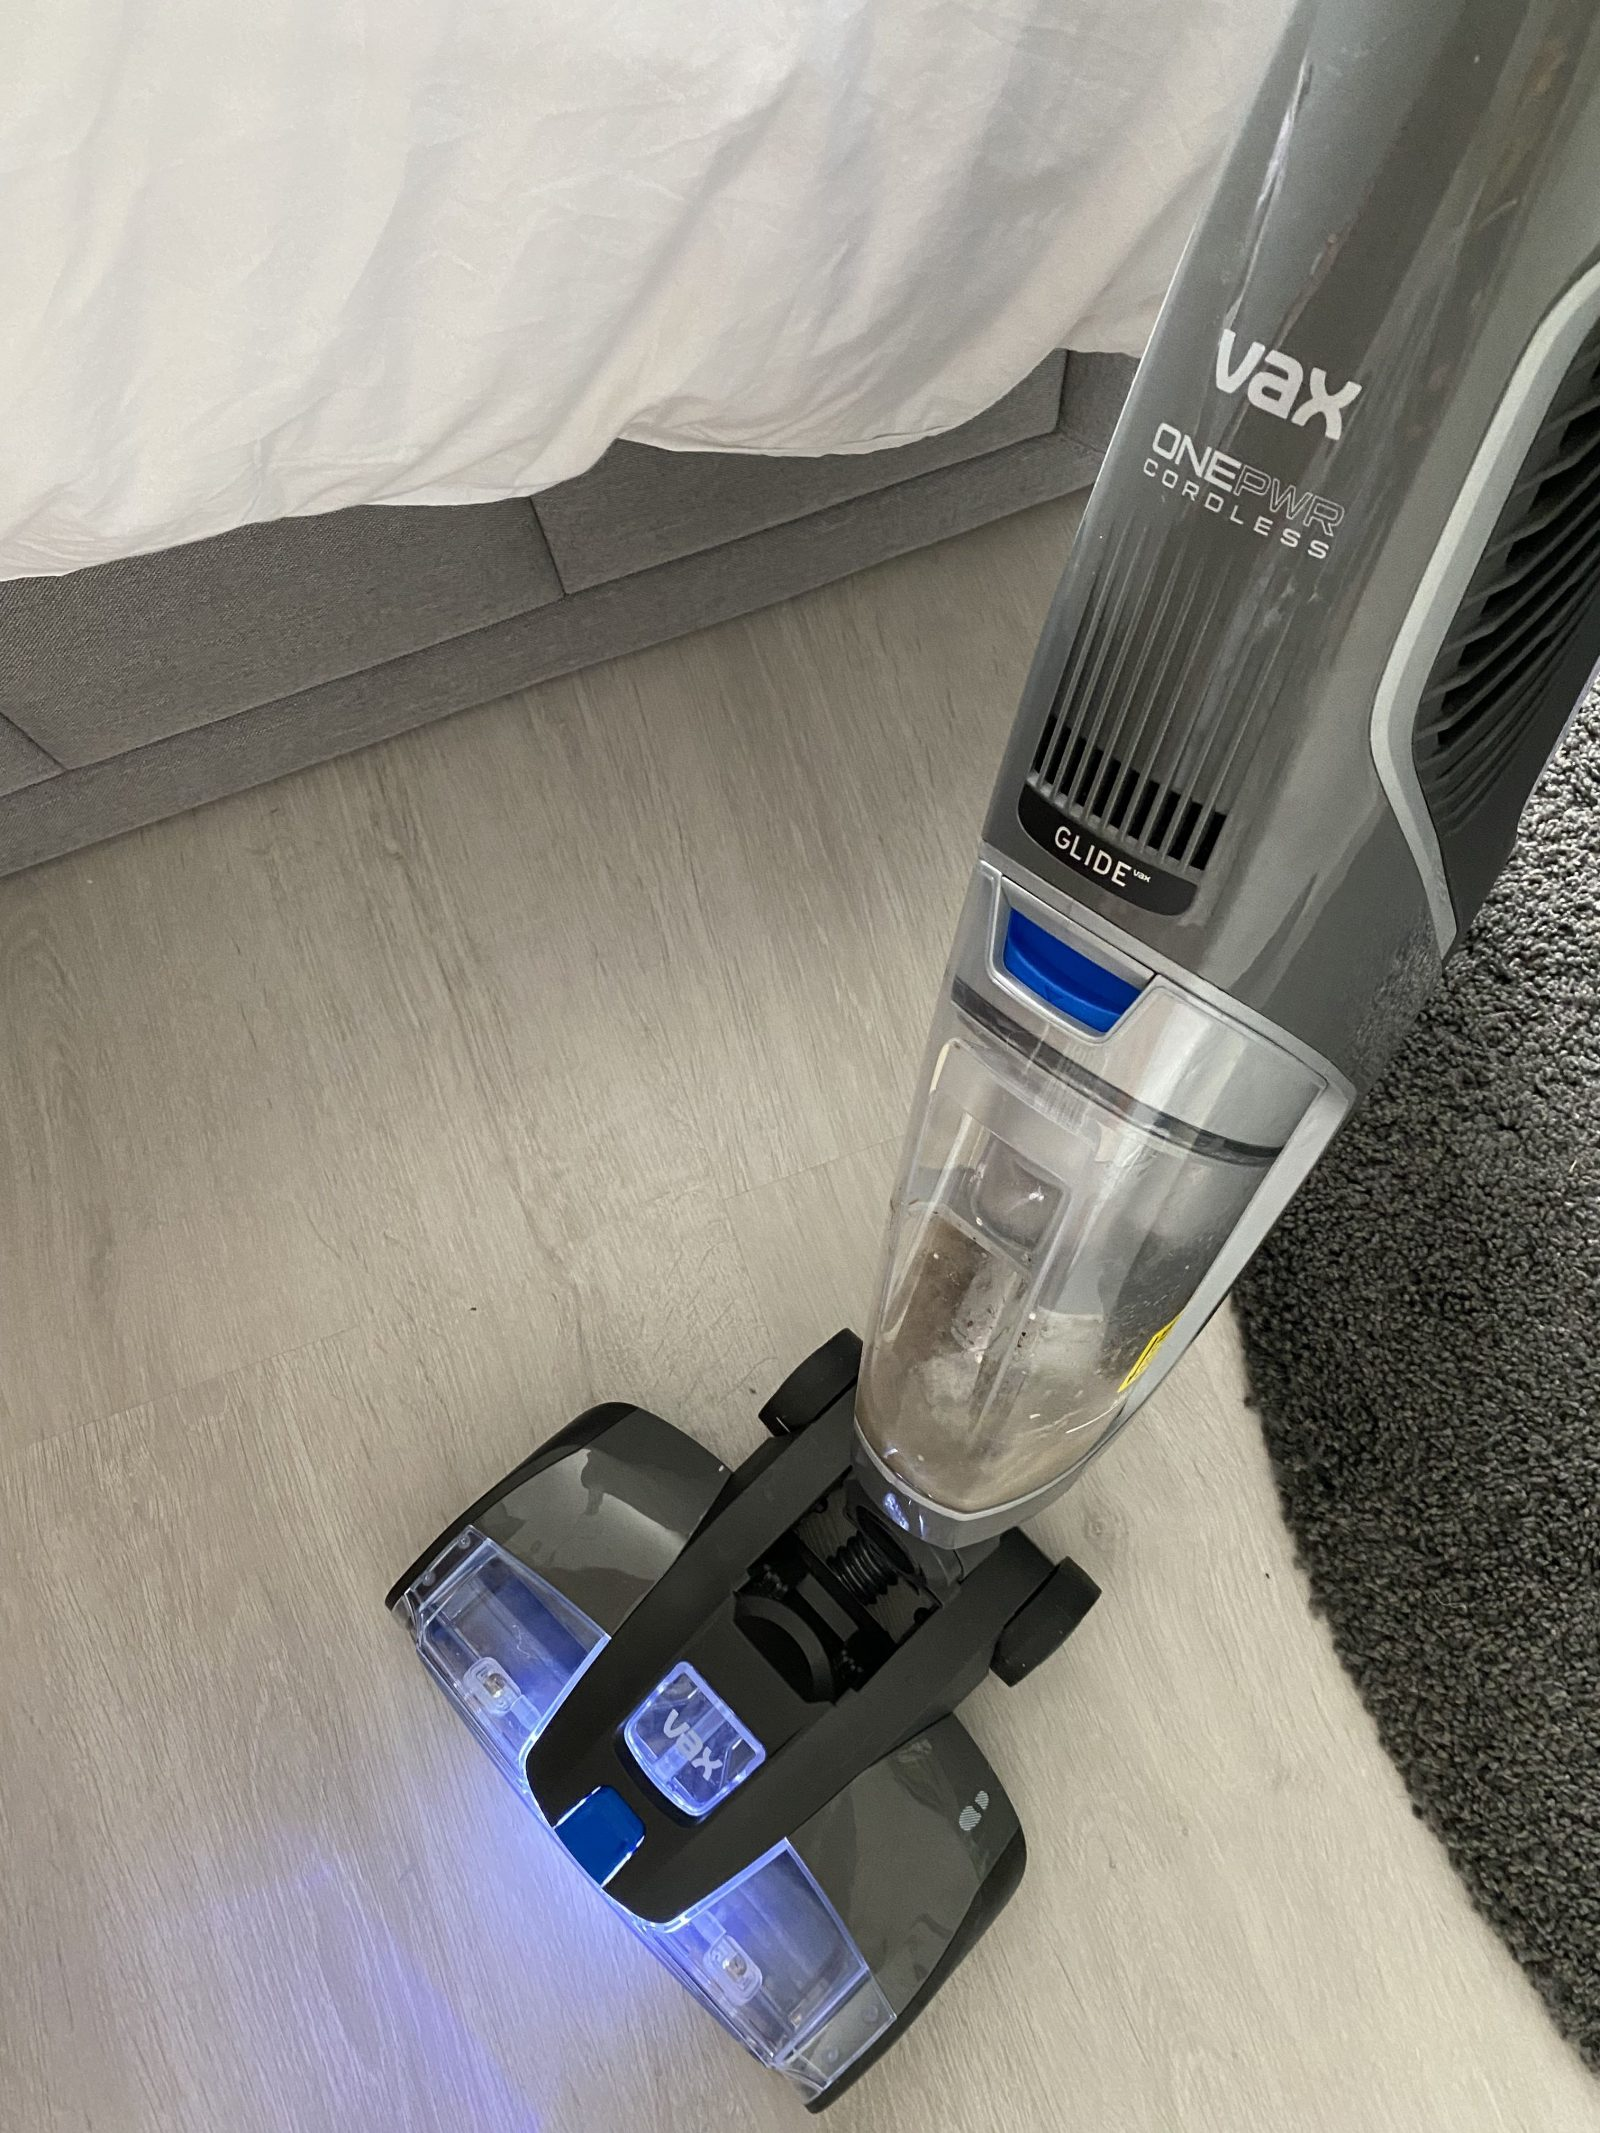 5 Vacuum Cleaners Aimed At Families Reviewed, IMG 4600 1600x2133%, daily-dad%